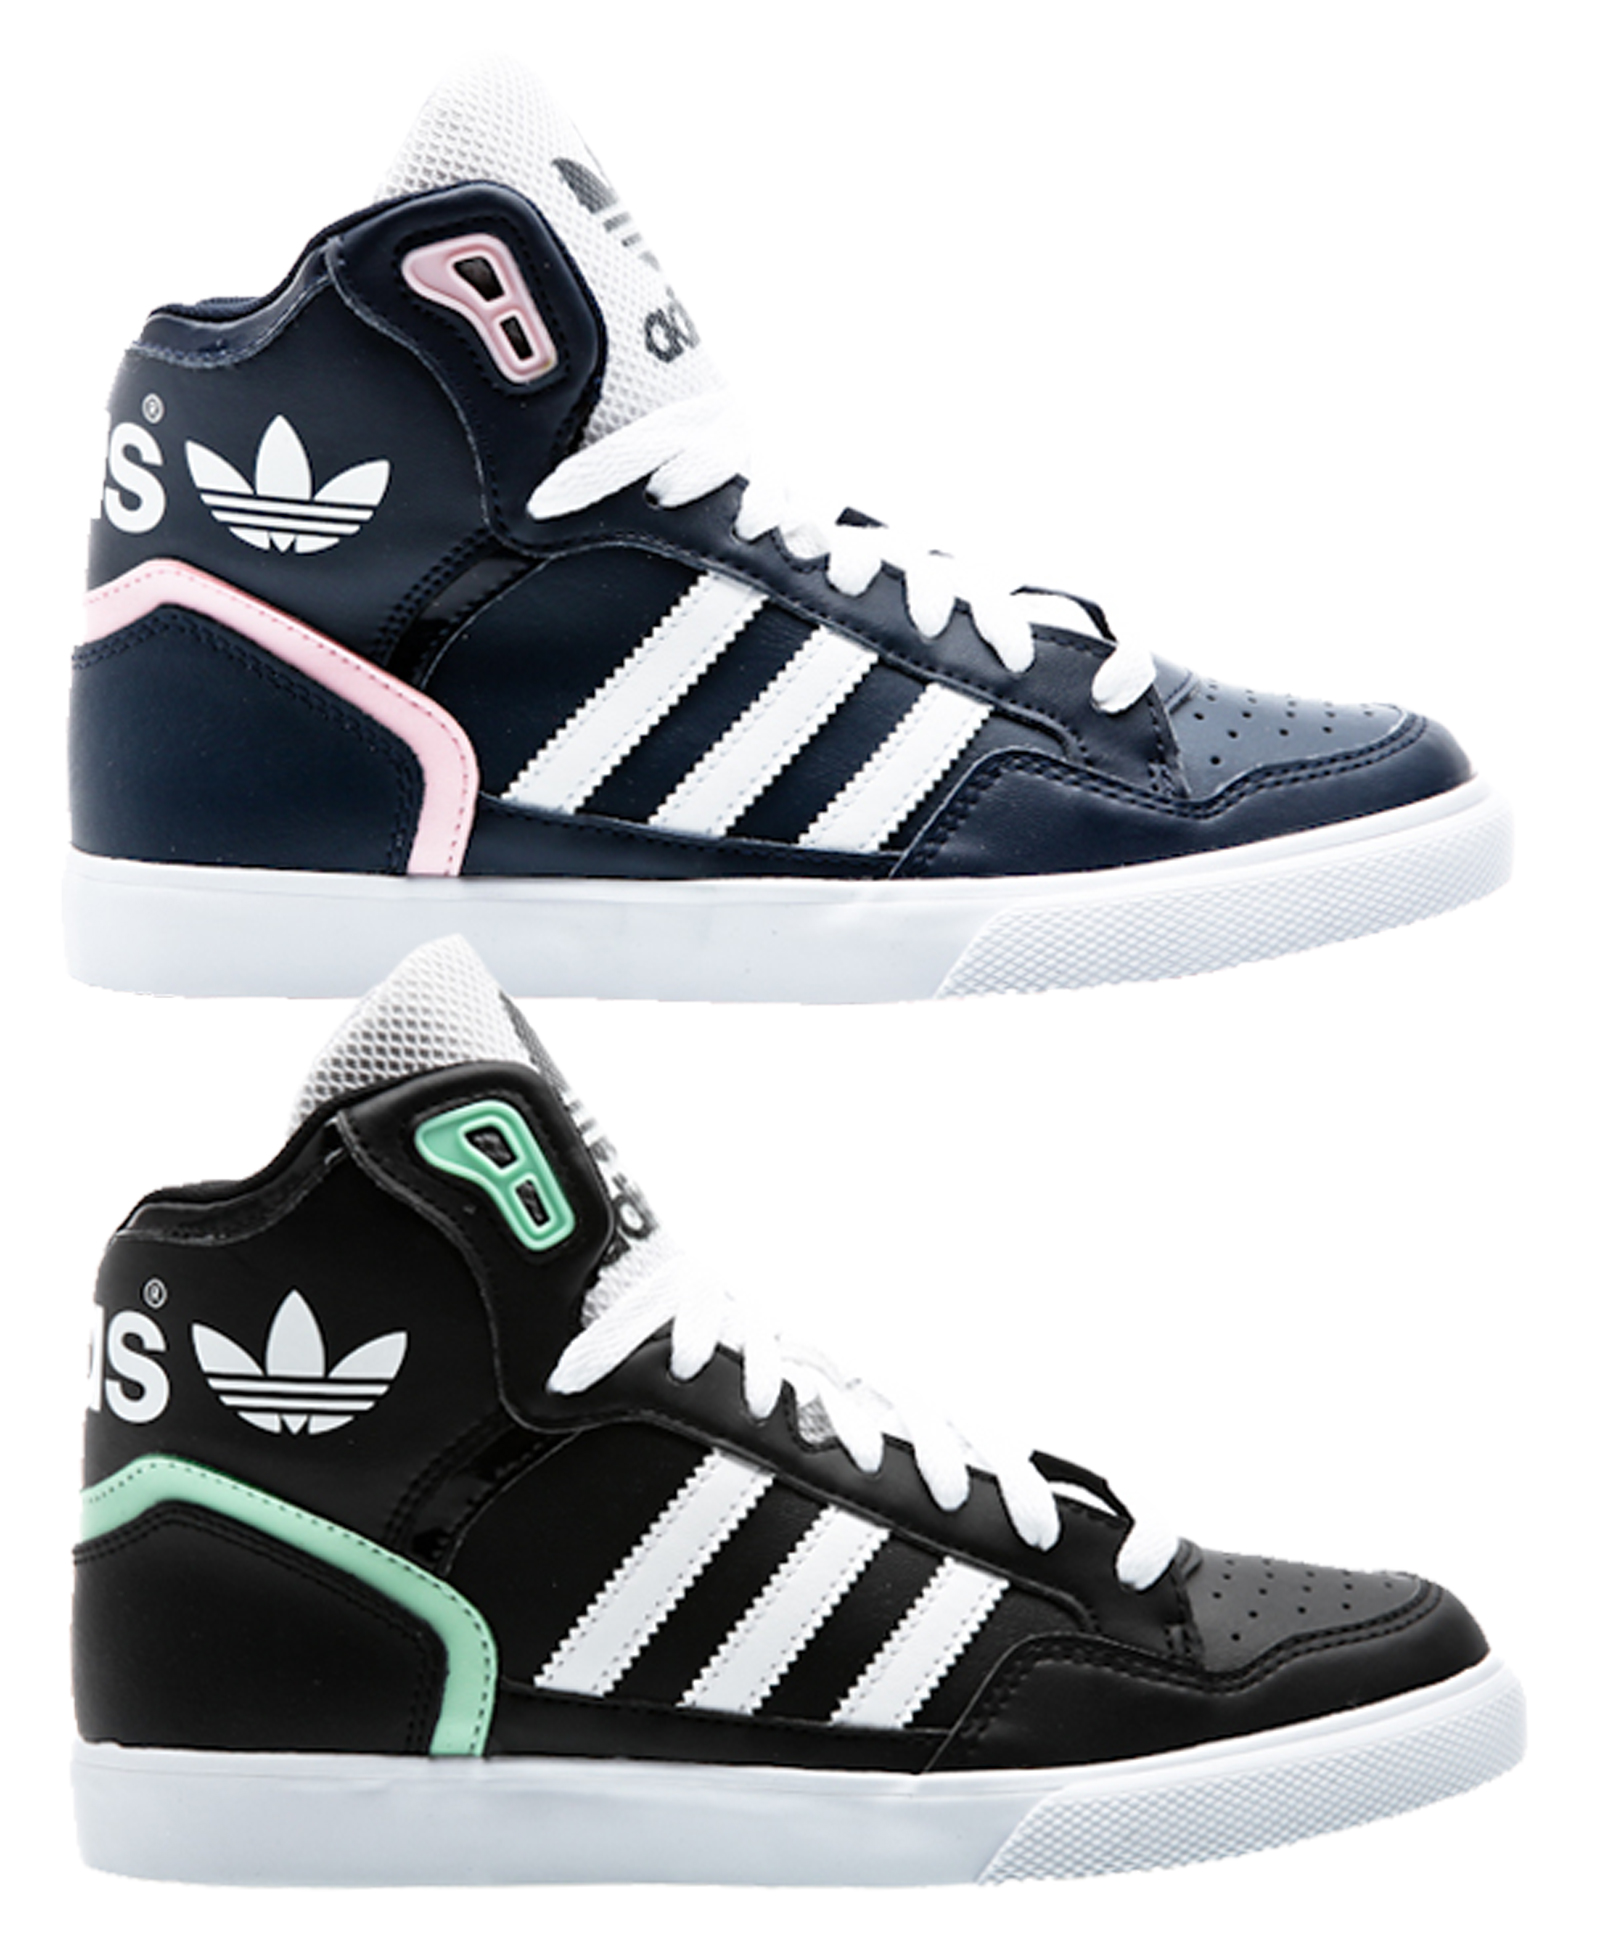 adidas originals courtvantage tf w women sneaker damen schuhe shoes ebay. Black Bedroom Furniture Sets. Home Design Ideas